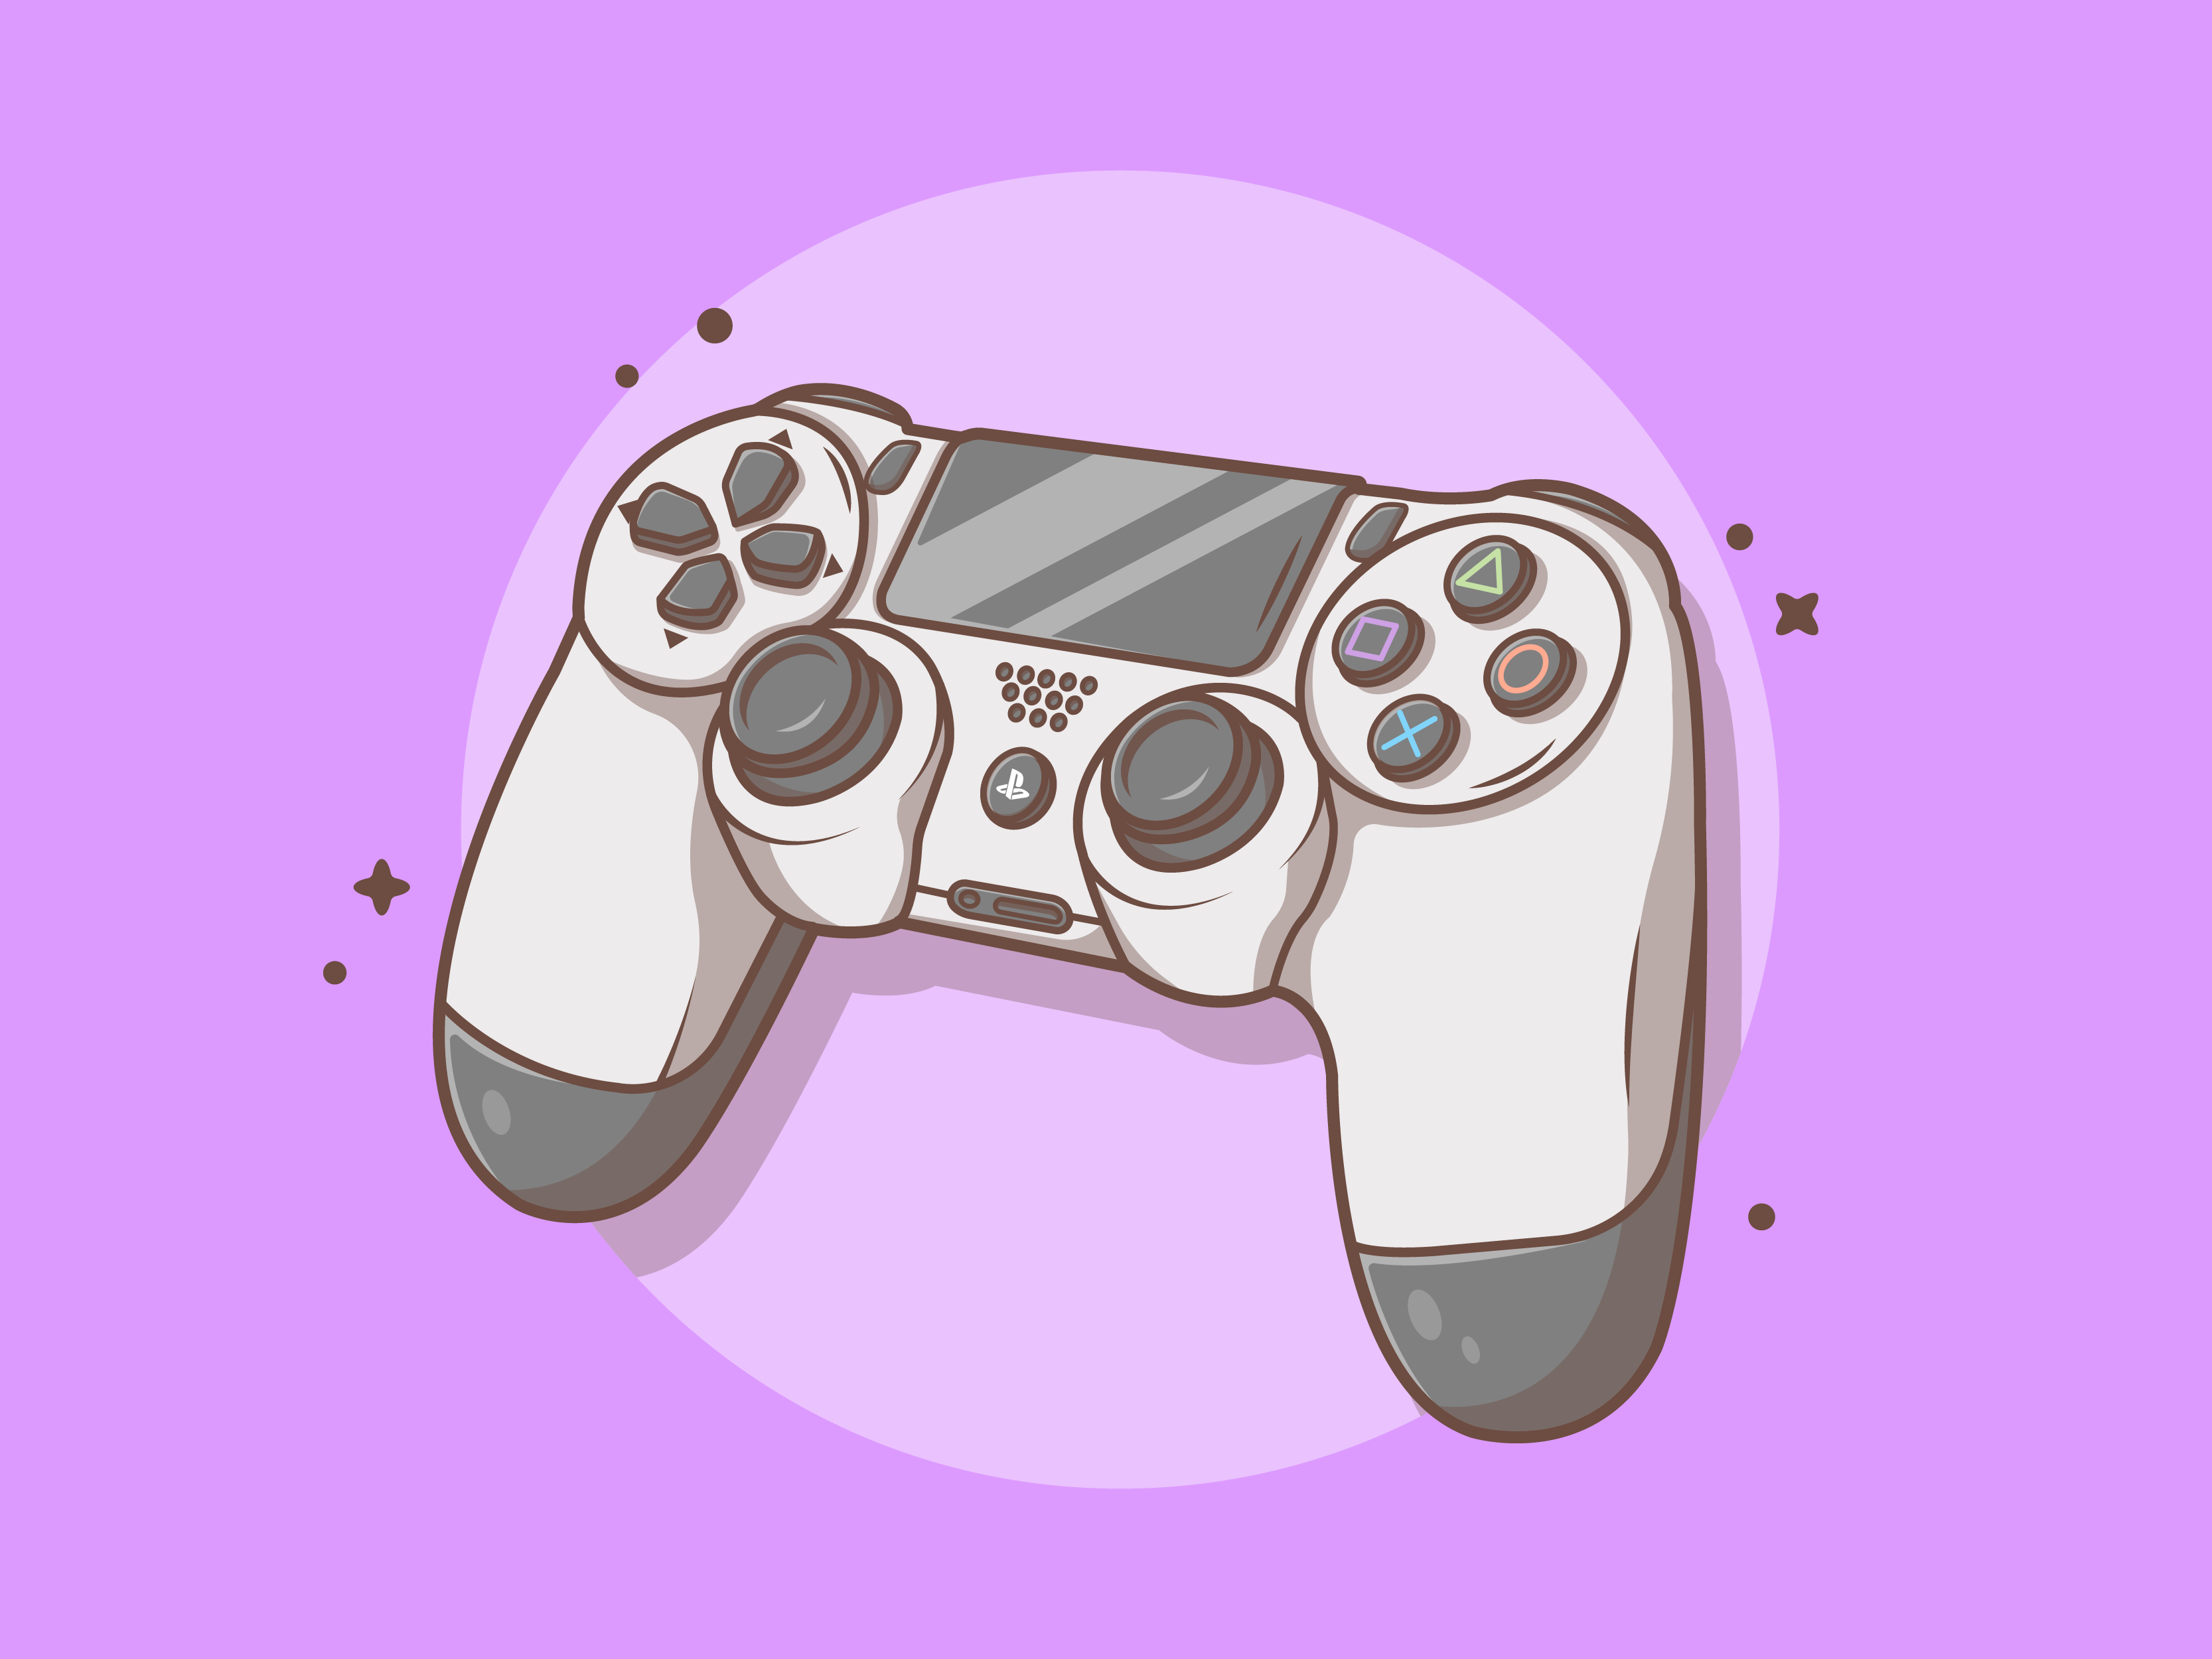 Ps4 Controller Ps4 Controller Best Gaming Wallpapers Gaming Wallpapers